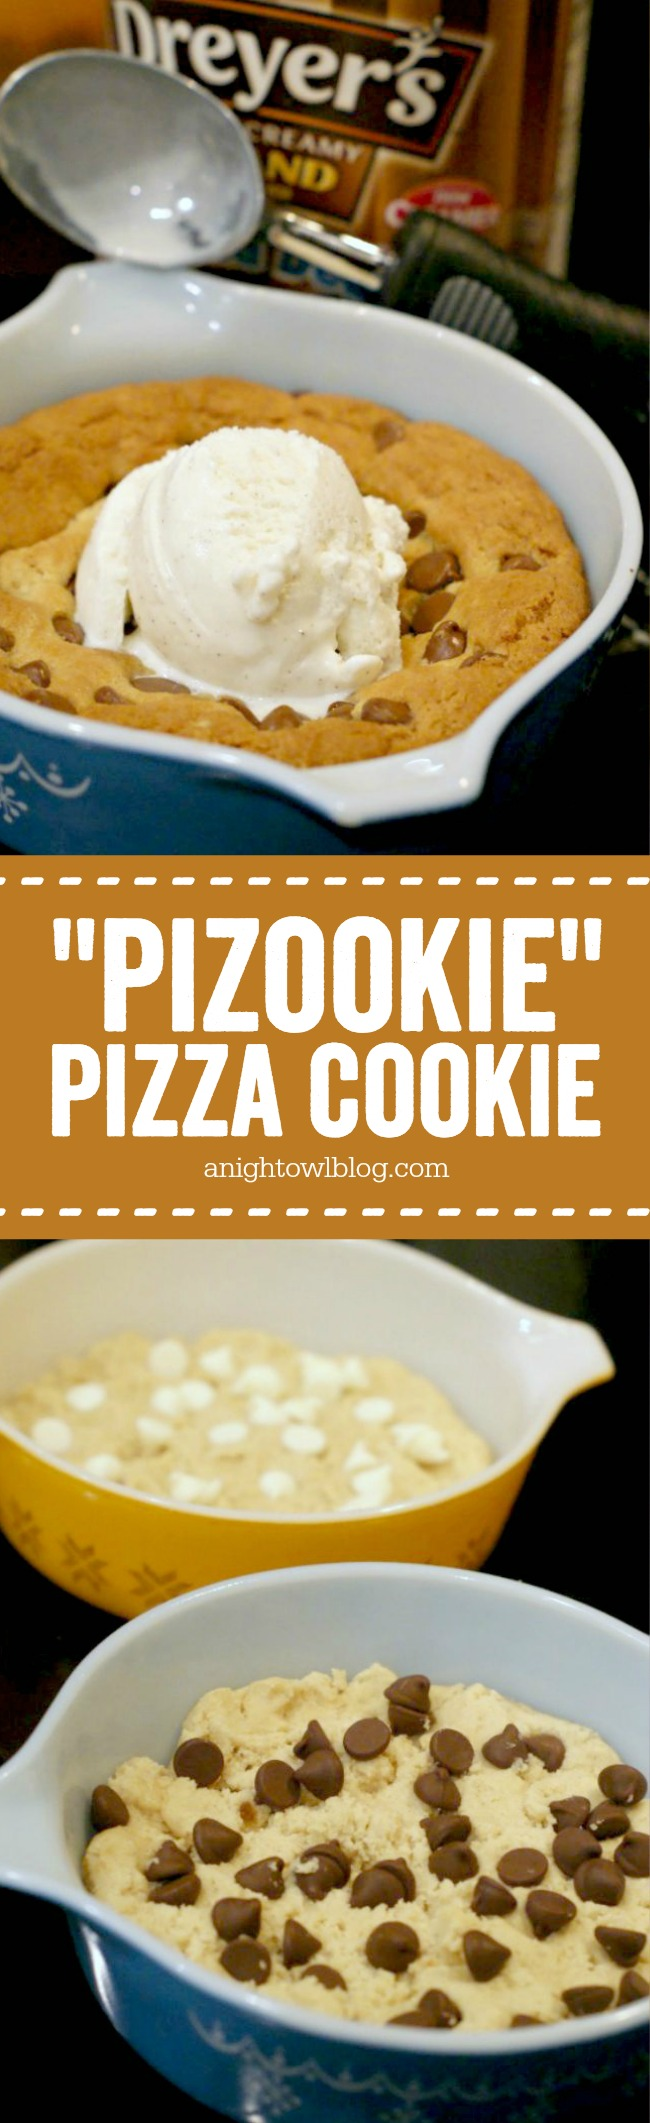 "Learn how to make your own BJ's or Oregano's ""Pizookie"" Pizza Cookie at home!"